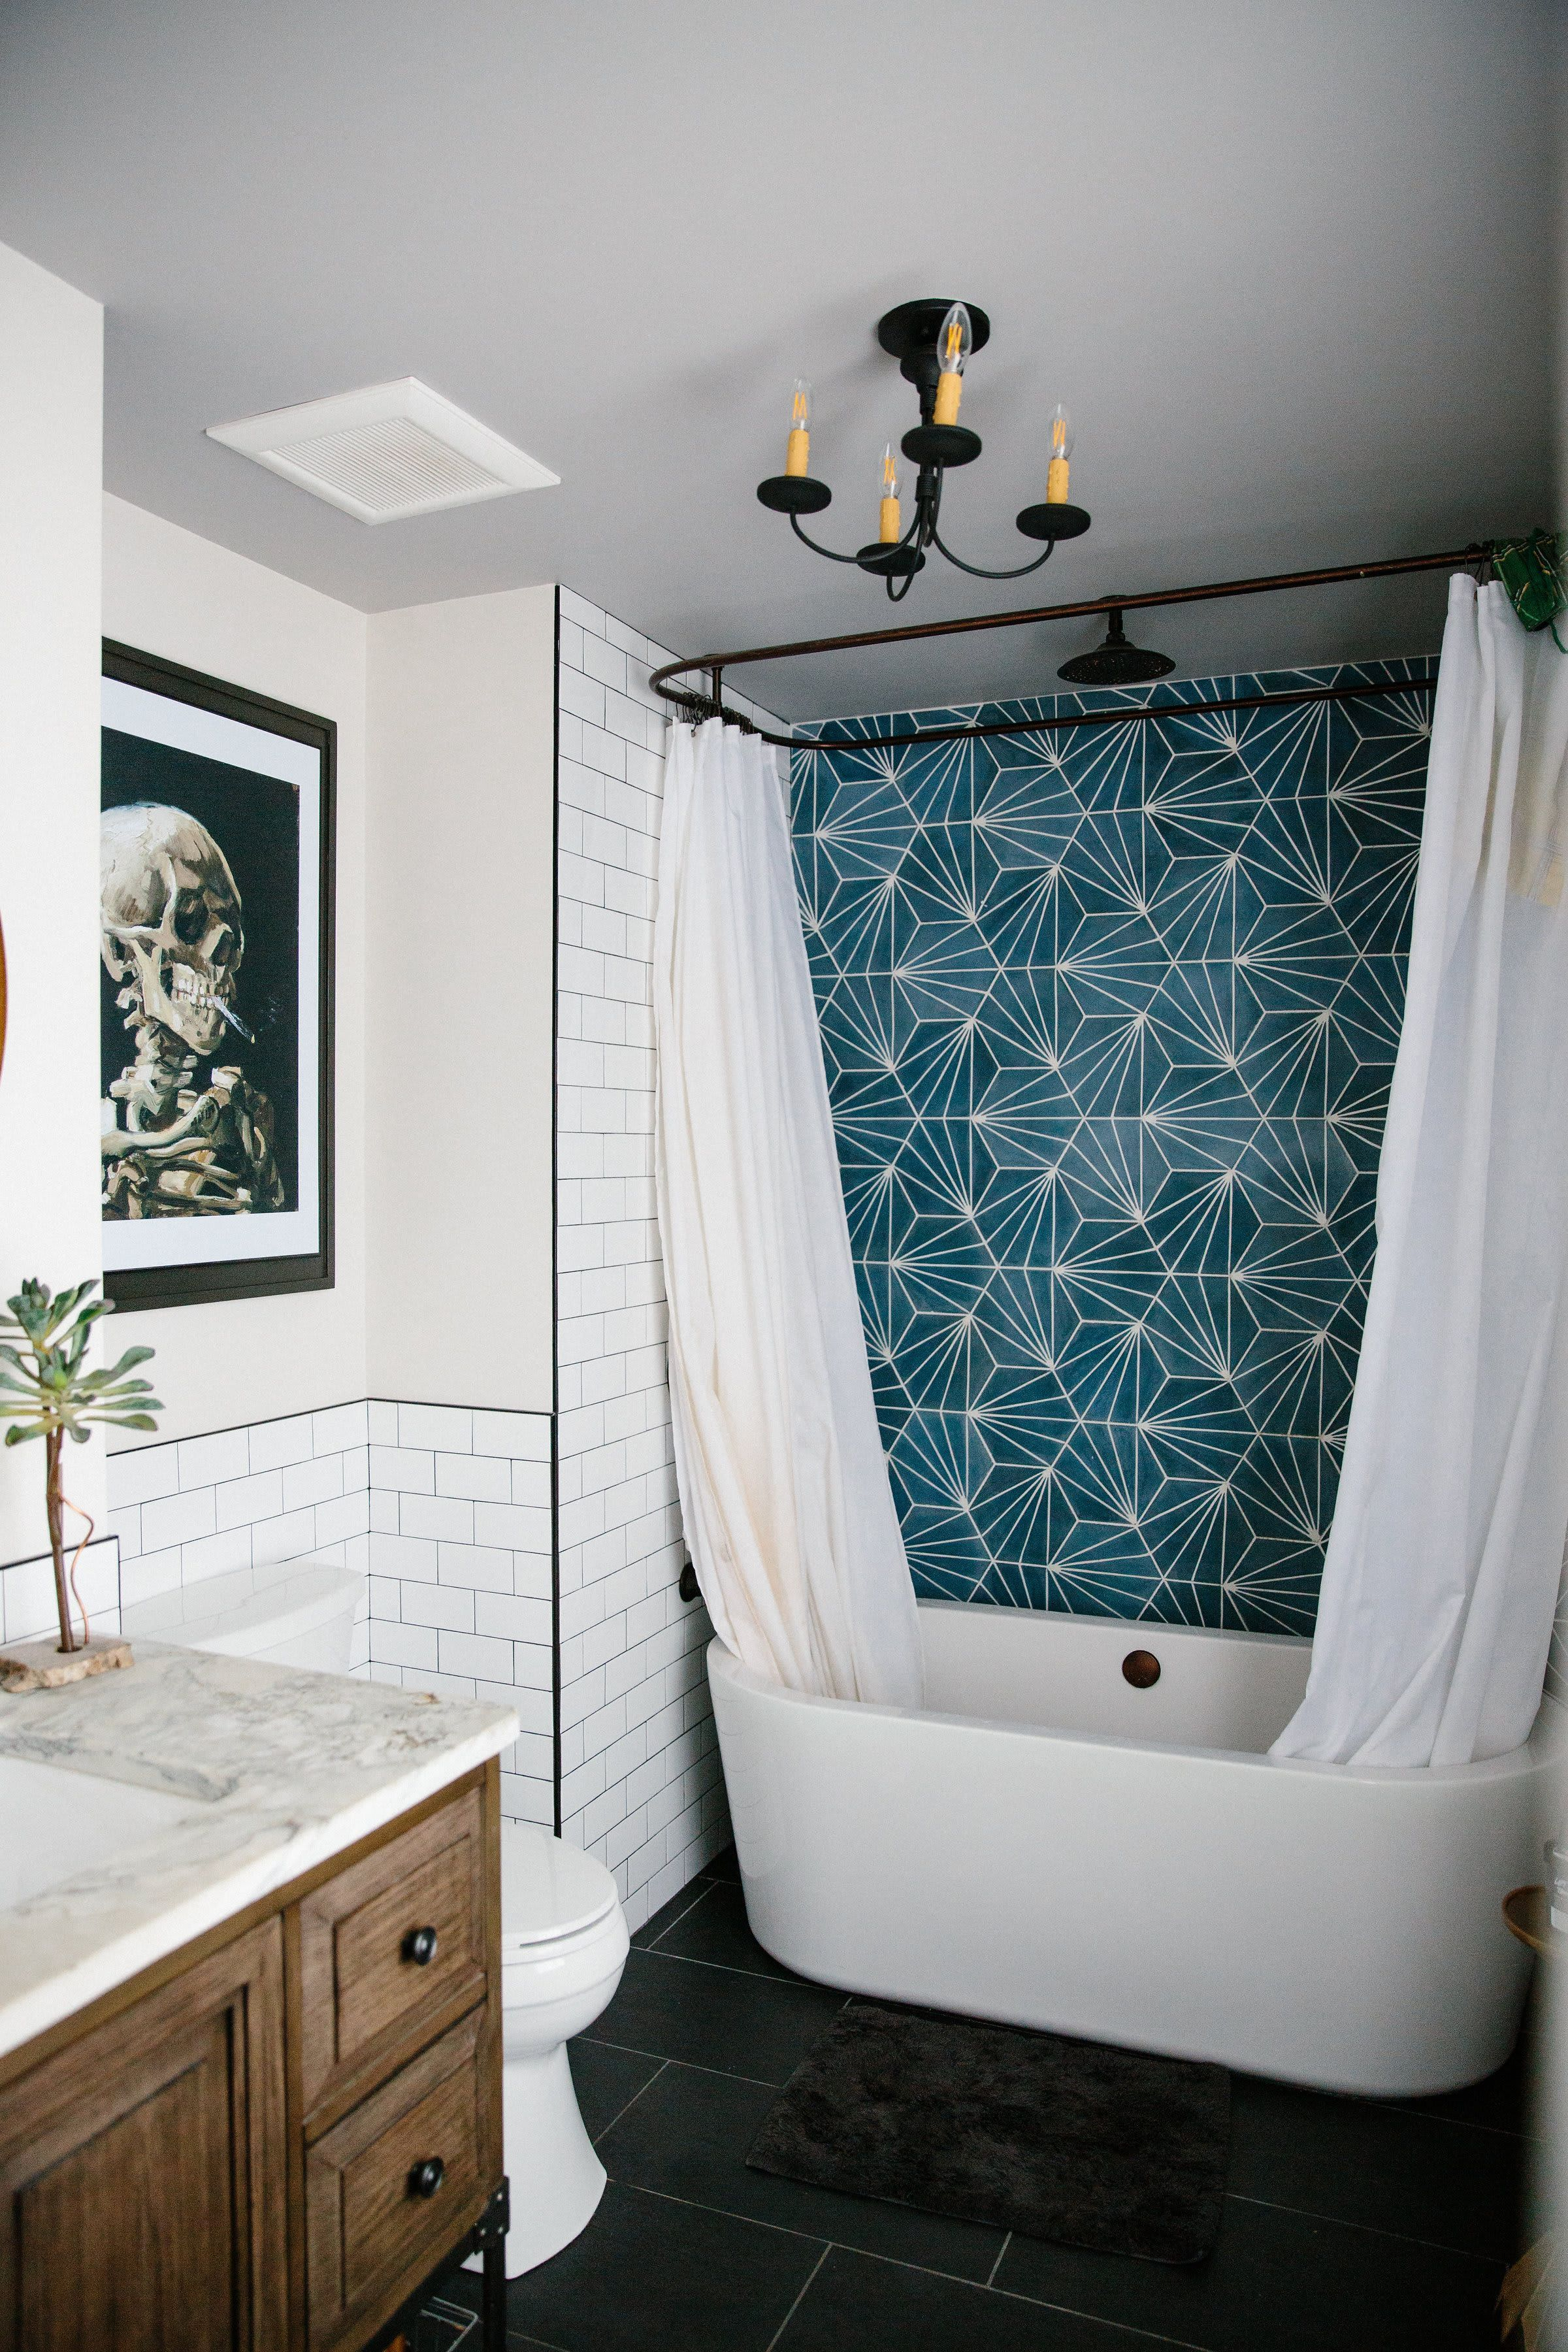 teal shower tile surround with black and wood best on home inspirations this year the perfect dream bathrooms diy bathroom ideas id=95417